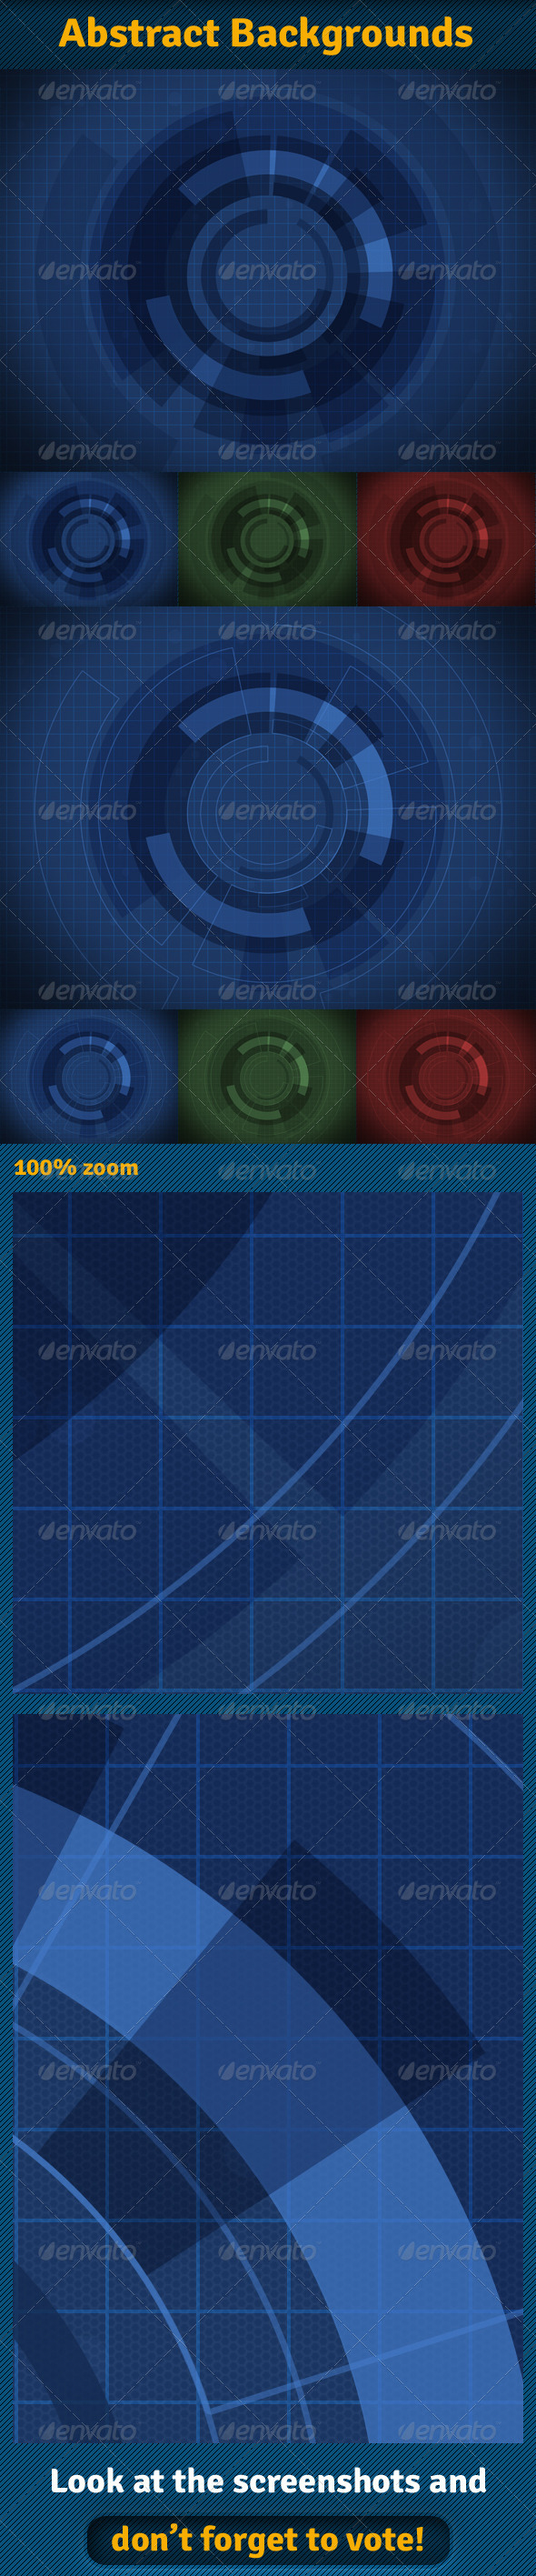 GraphicRiver Abstract Backgrounds 03 6713341